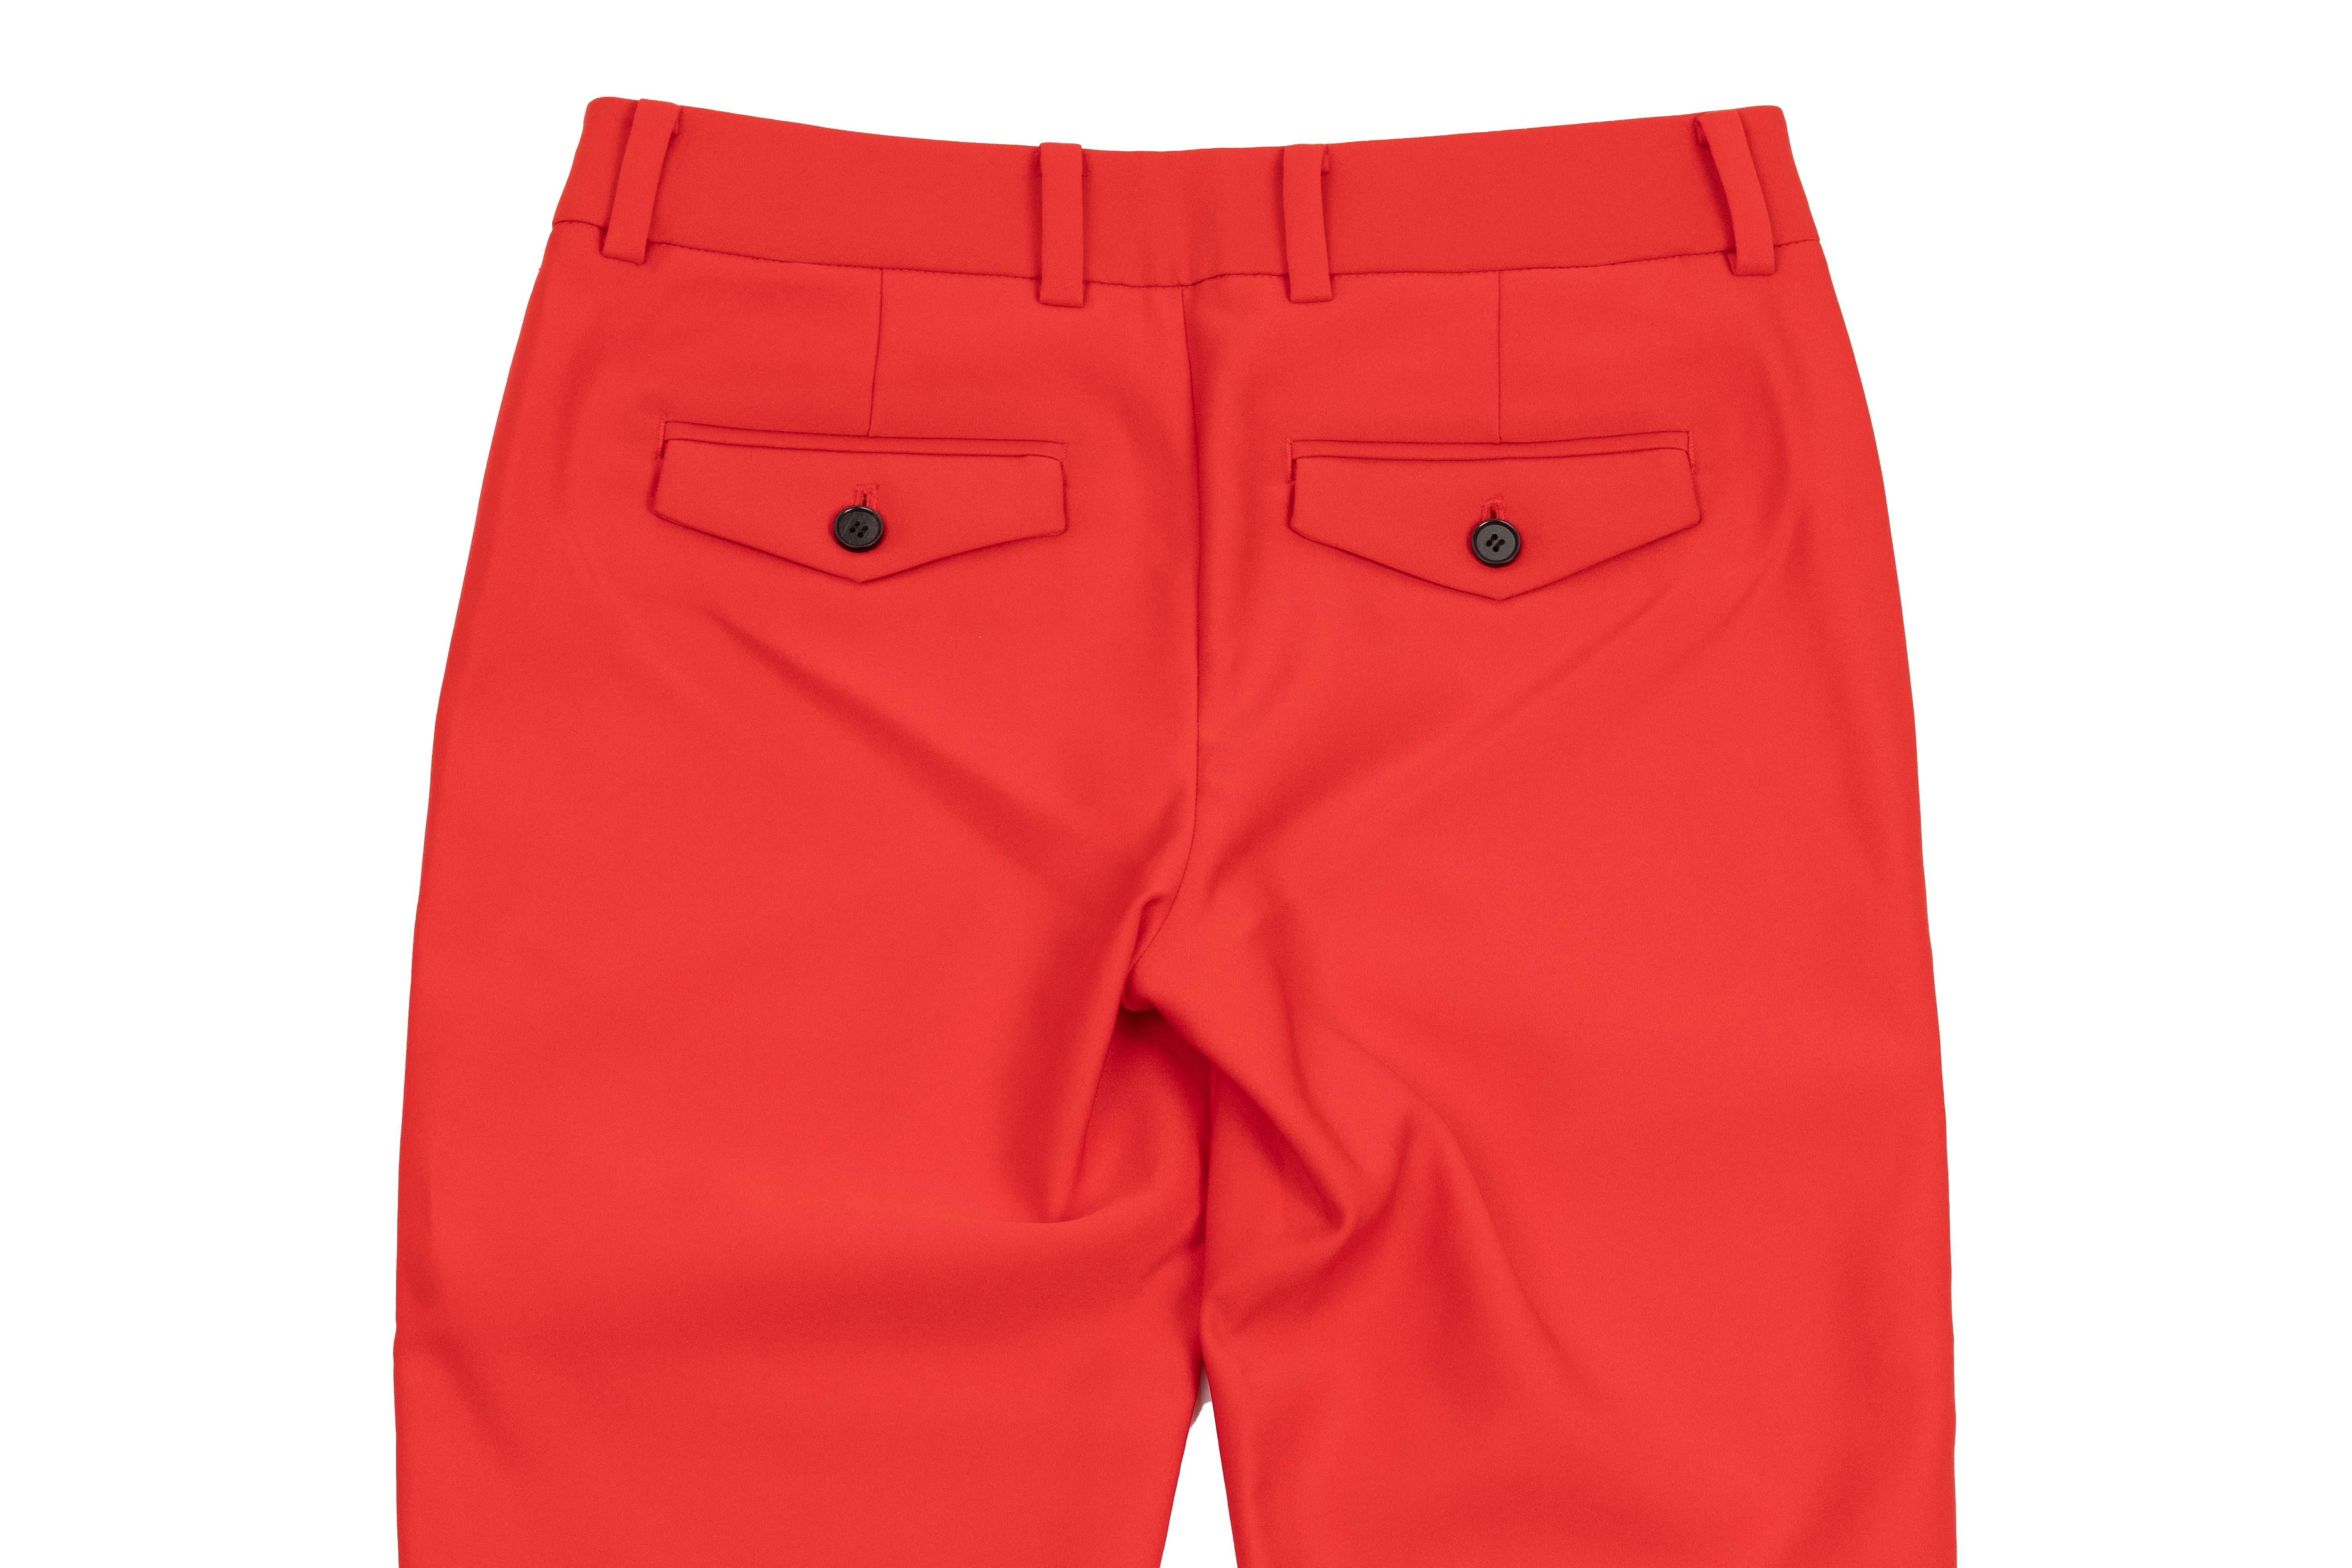 A PAIR OF CALVIN KLEIN RED TROUSERS - Image 2 of 3